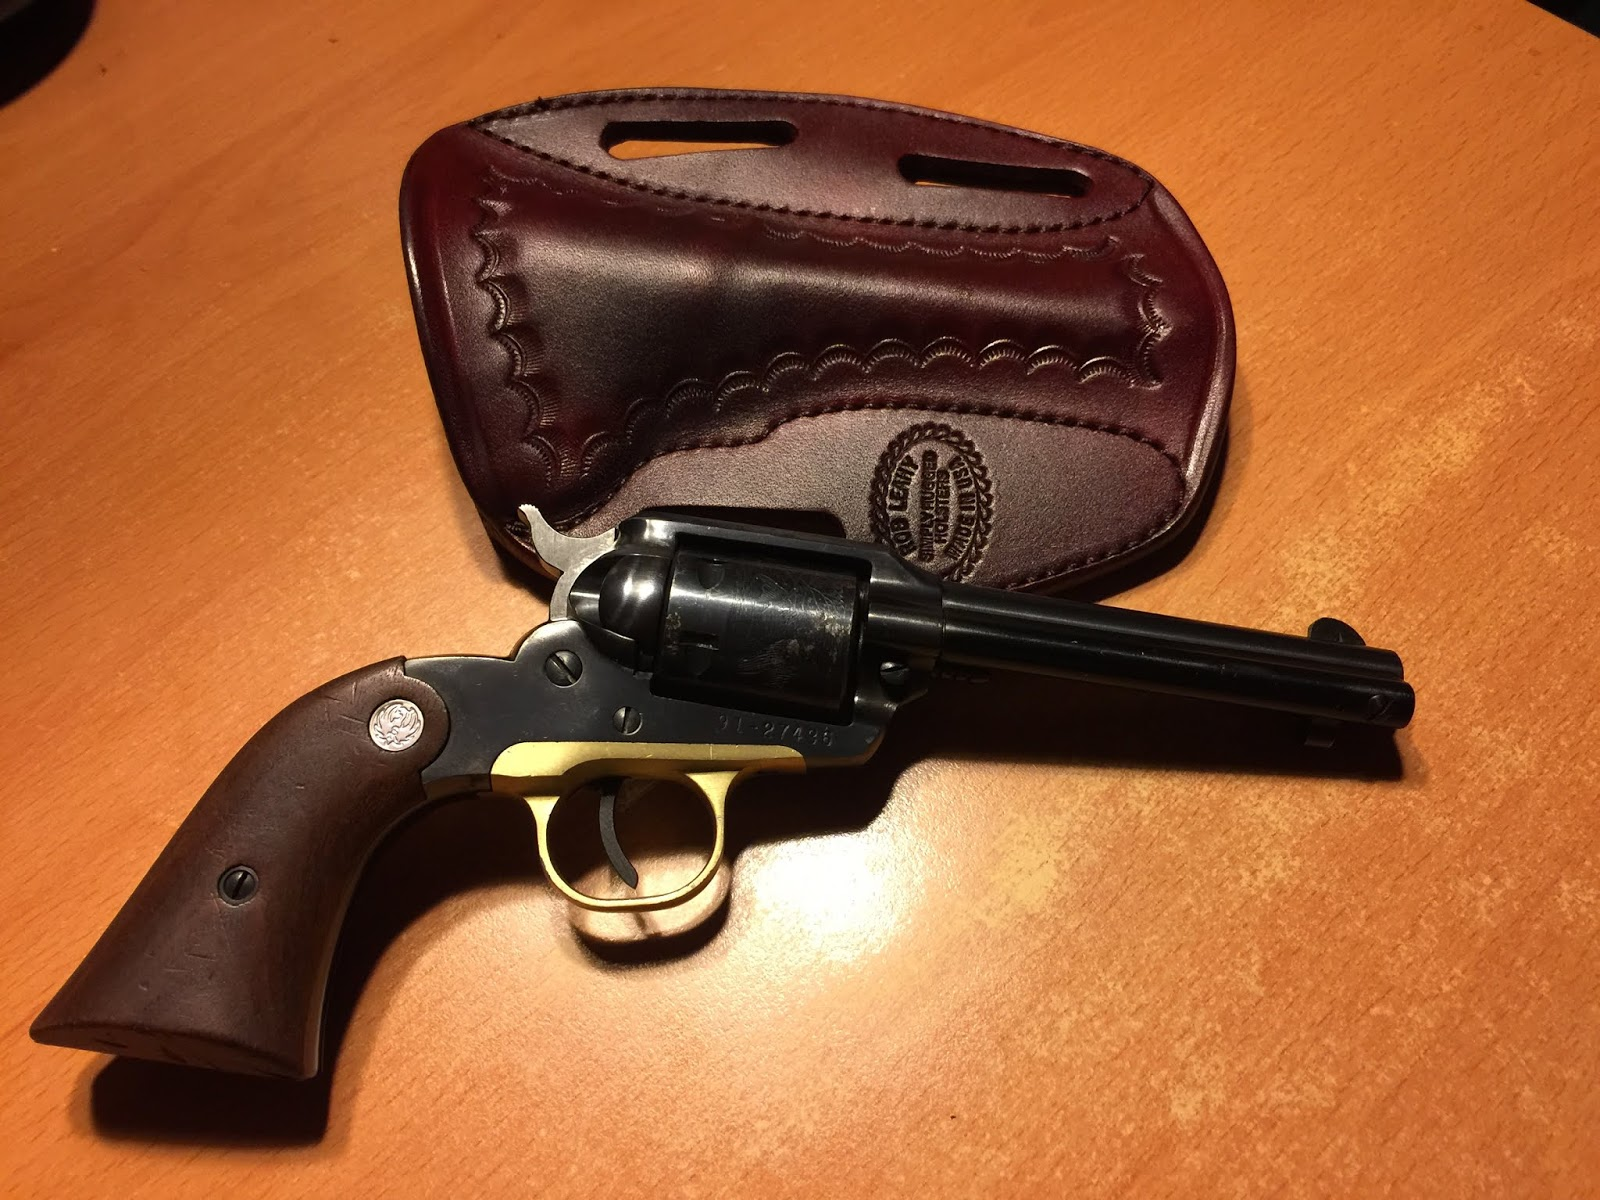 Grips for a Ruger Super Bearcat